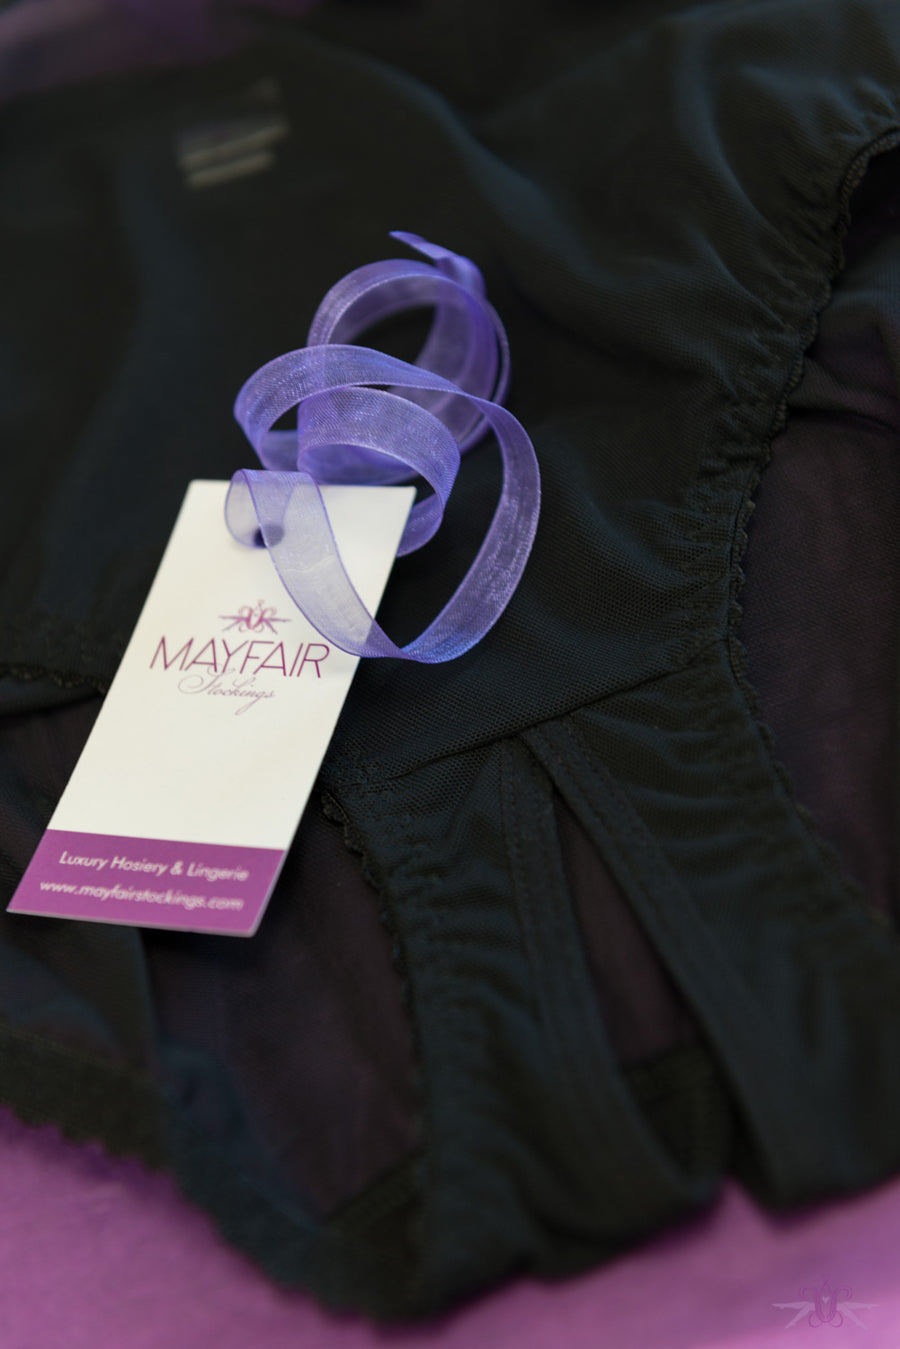 Mayfair Savannah Sheer Open Knicker